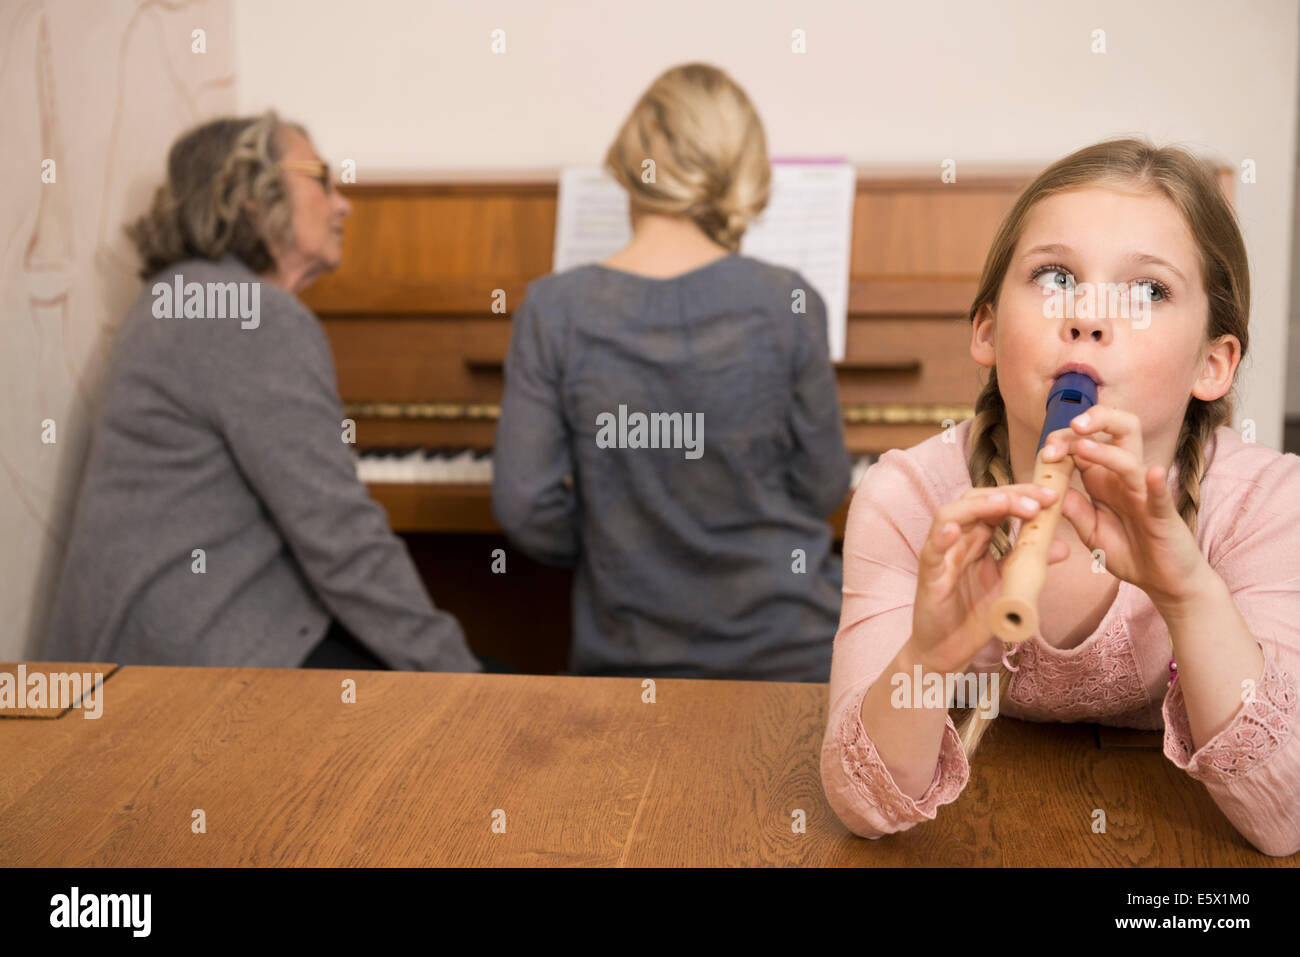 Girl playing recorder while sister on piano watched by grandmother - Stock Image